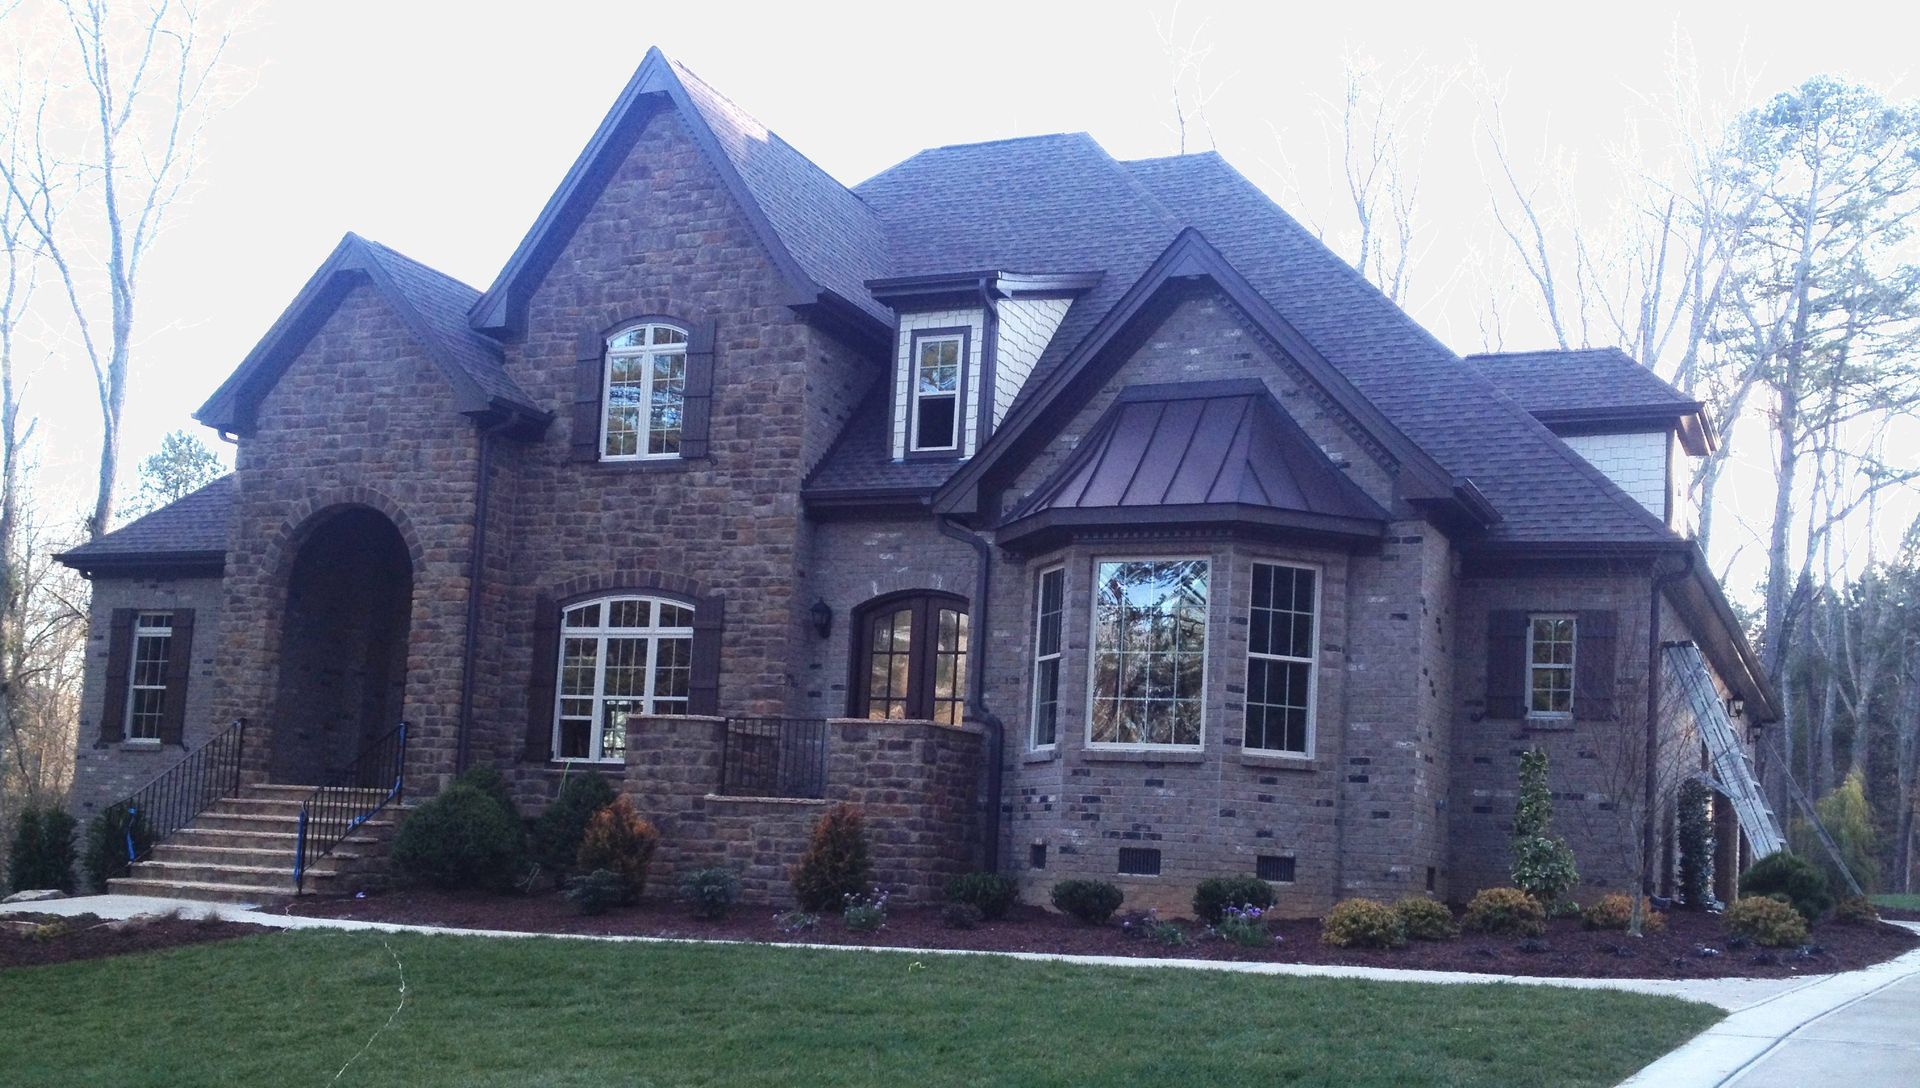 Roofing Contractor Serving Cary Clayton Fuquay Varina